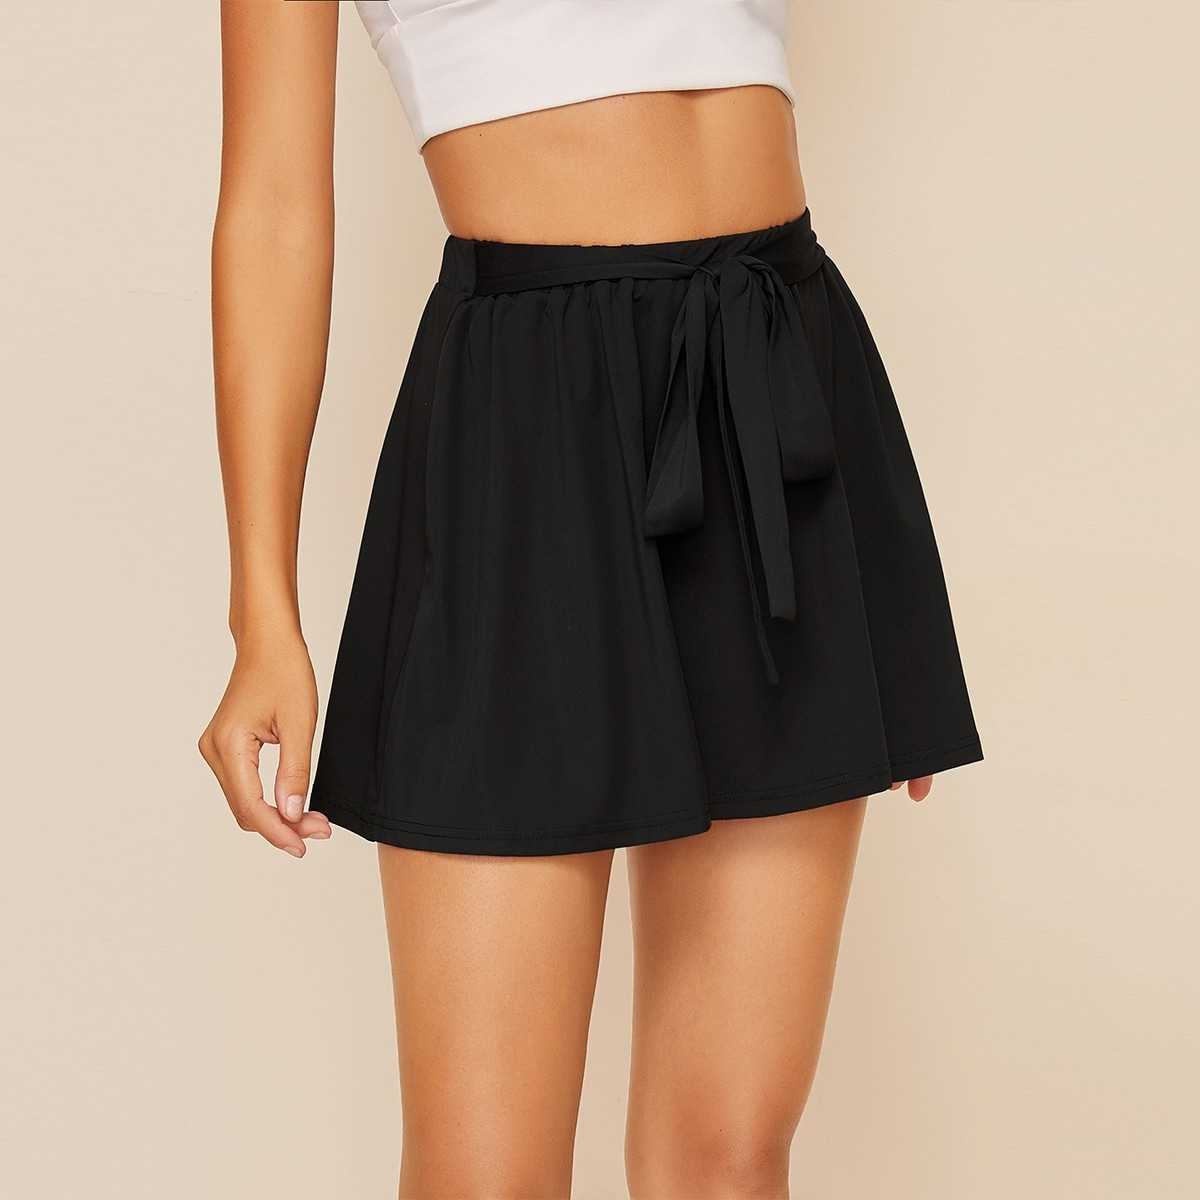 Tie Front Skater Skirt in Black by ROMWE on GOOFASH